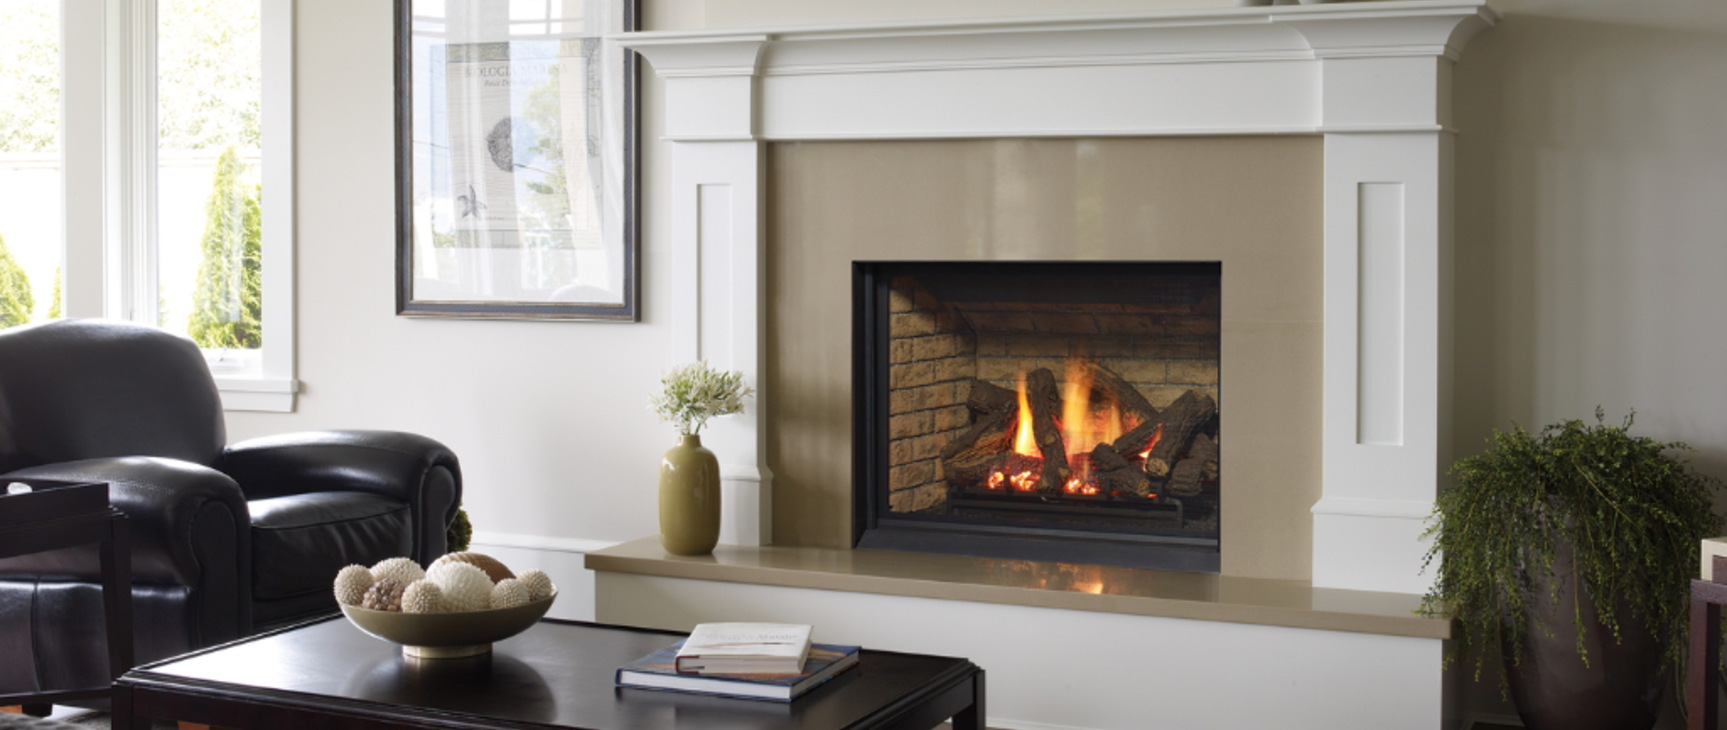 Gas Fireplace Repairs Gas Fireplace Sales My Gas Fireplace